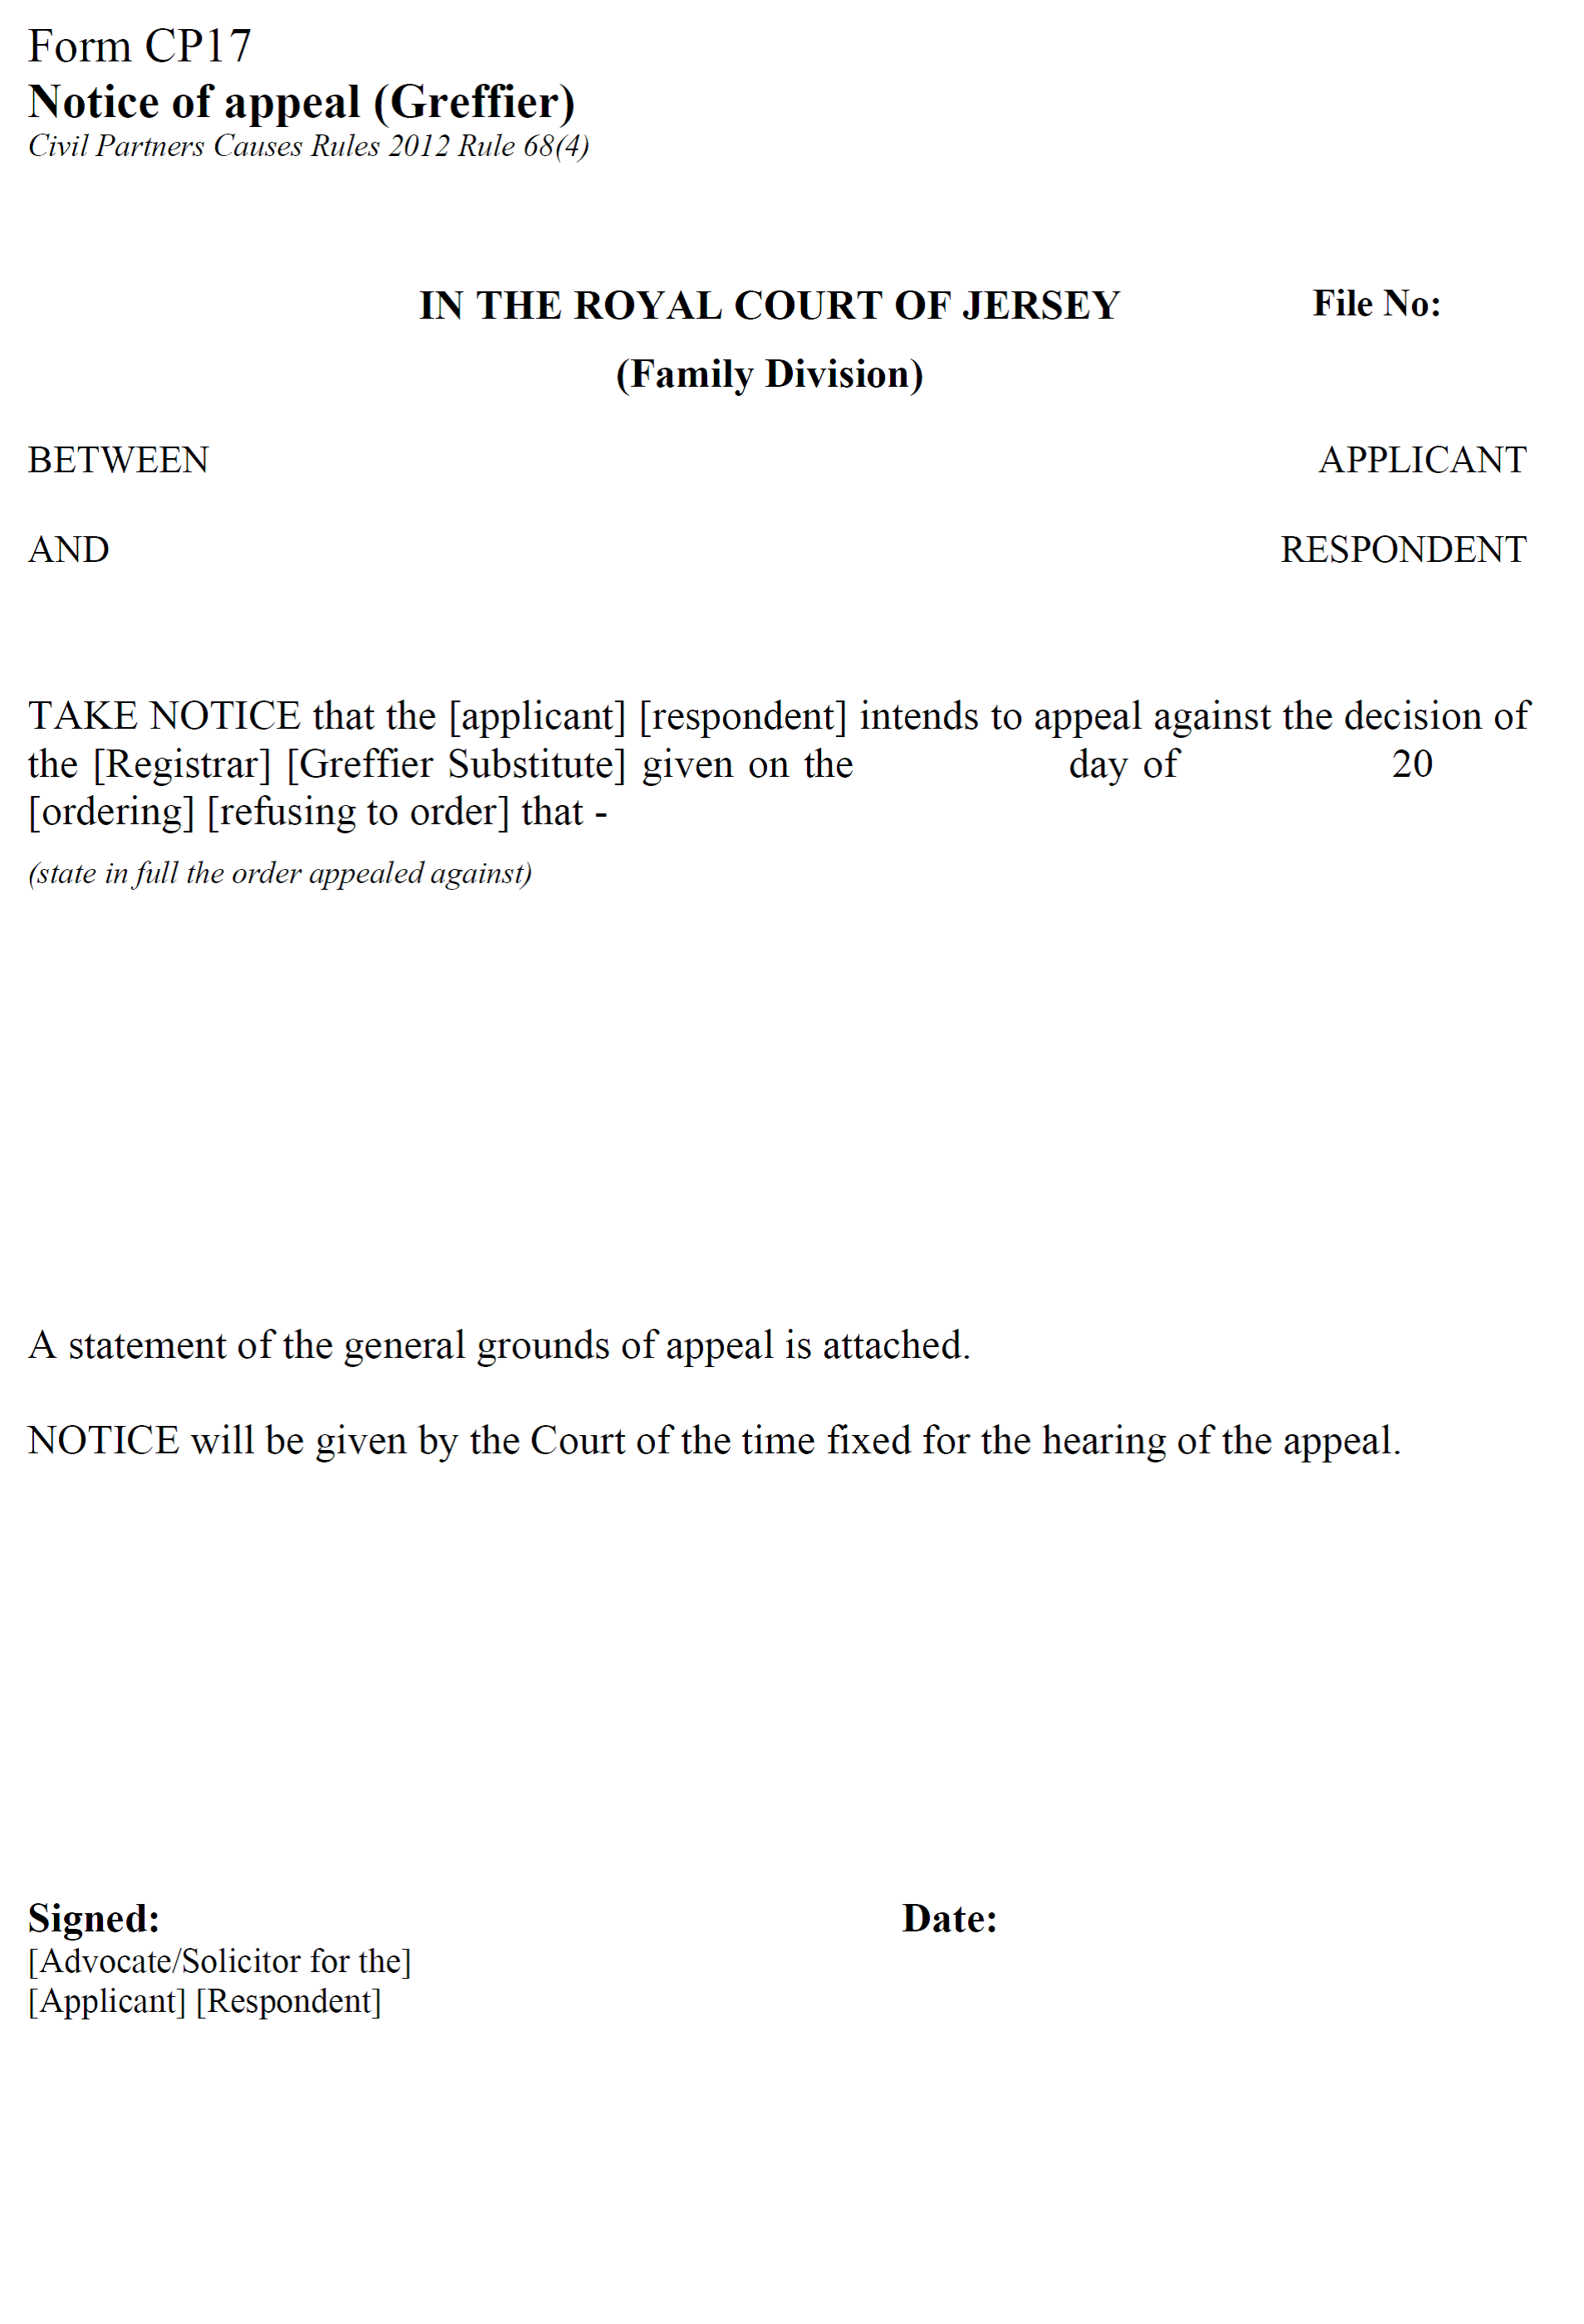 Form CP17 - Notice of appeal against order of the Greffier